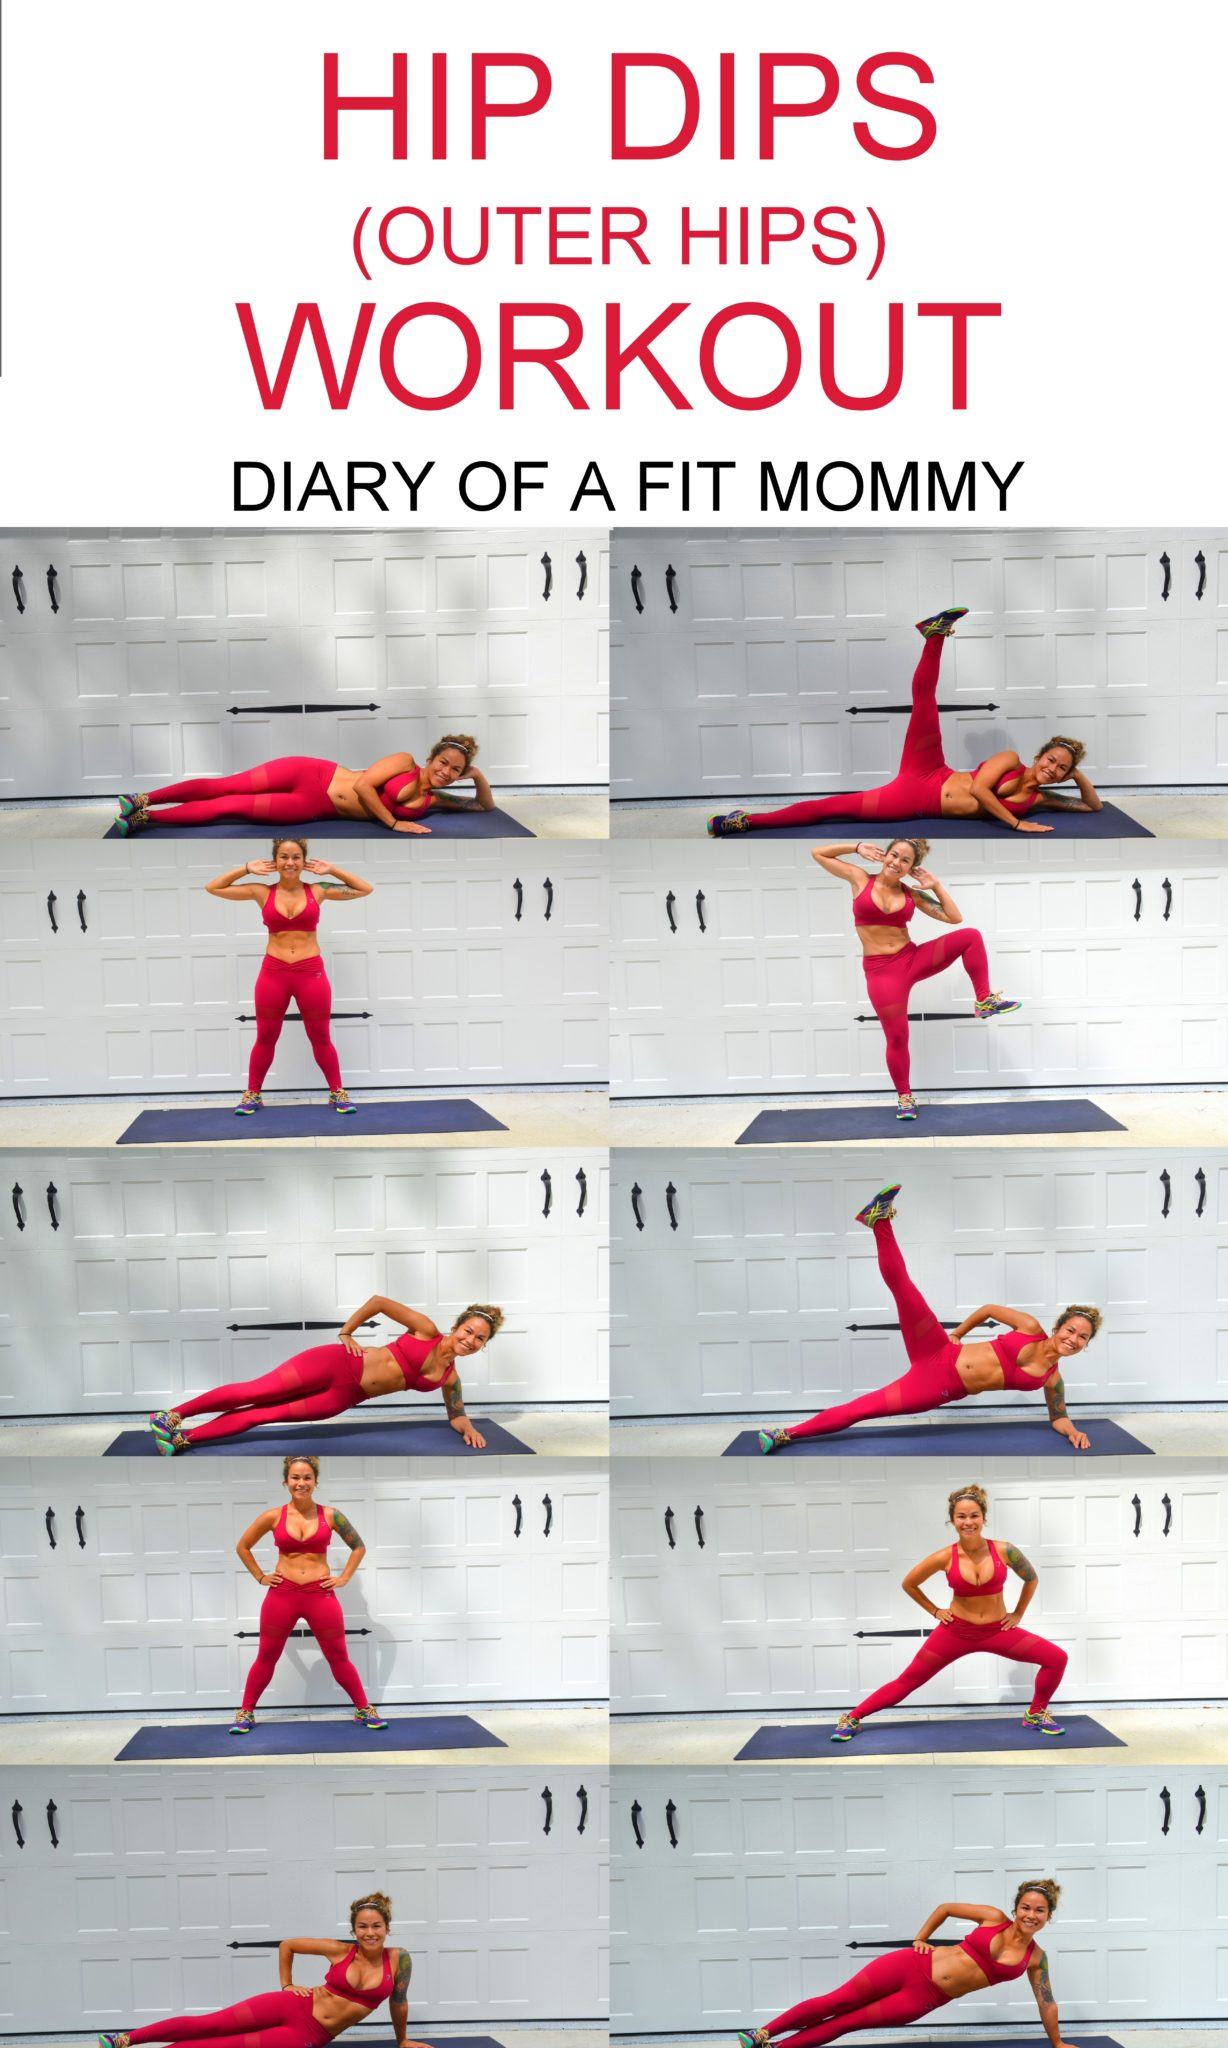 Hip Dips Workout Exercises To Build Your Hip Muscles Diary Of A